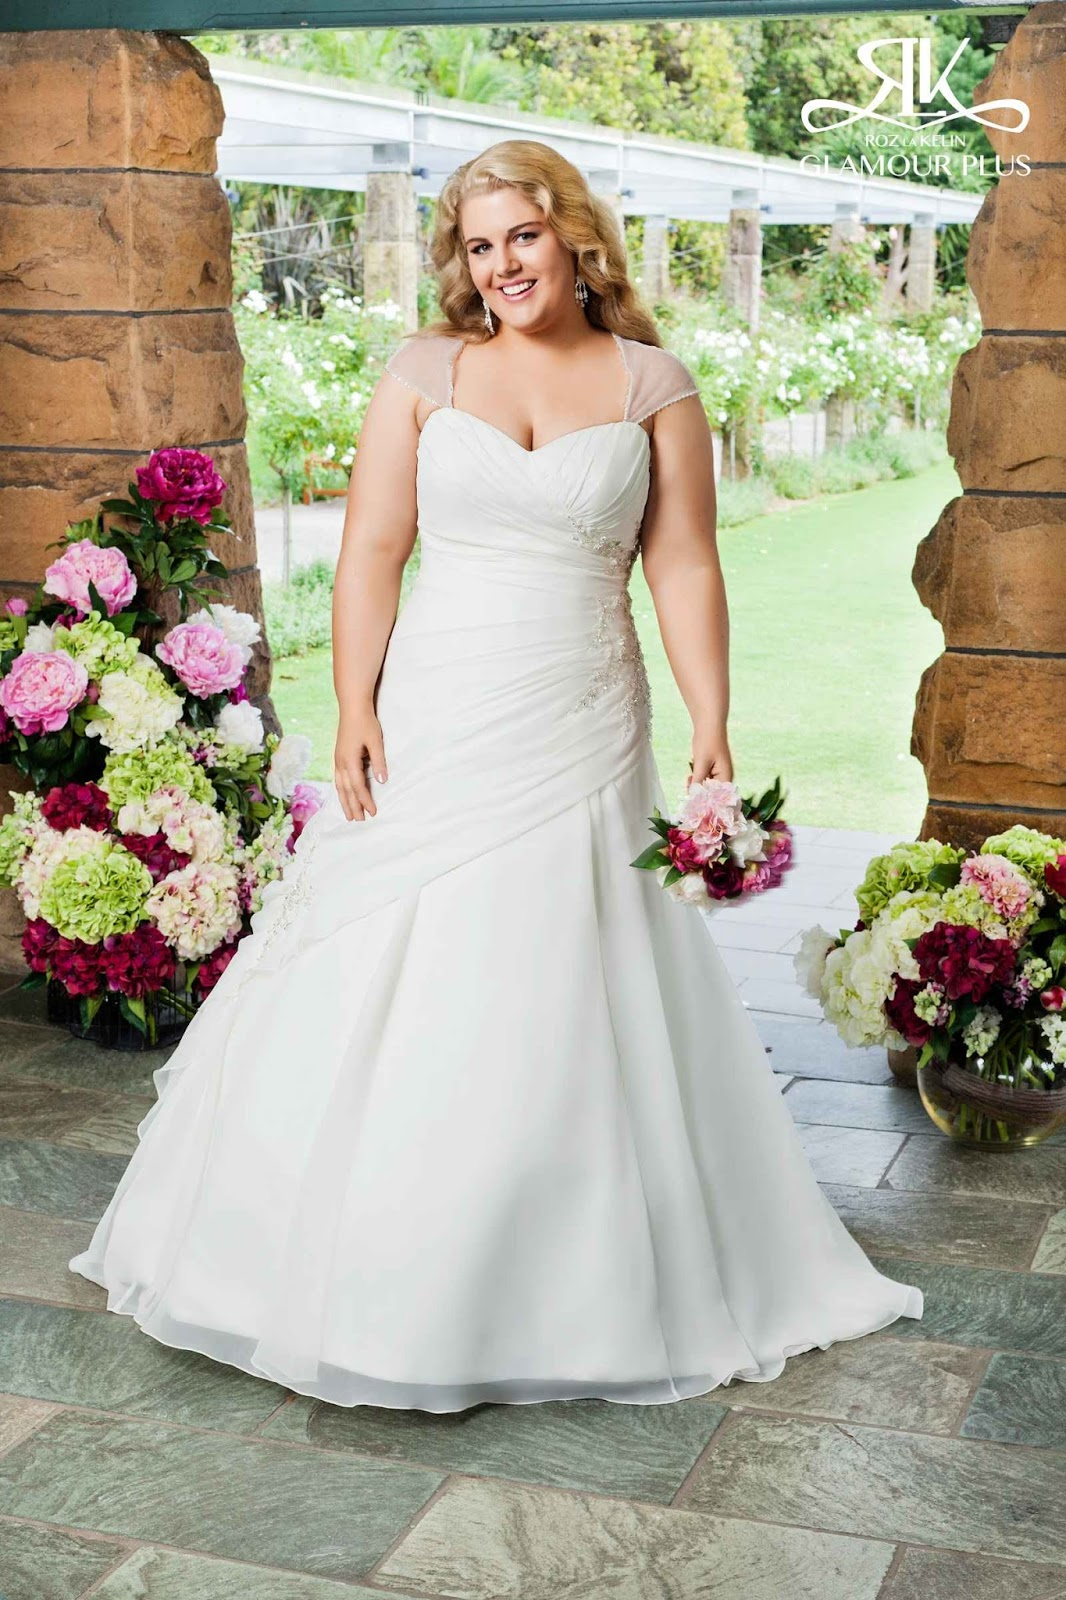 Plus size beach wedding dresses 2015 for Cheap wedding dresses edmonton